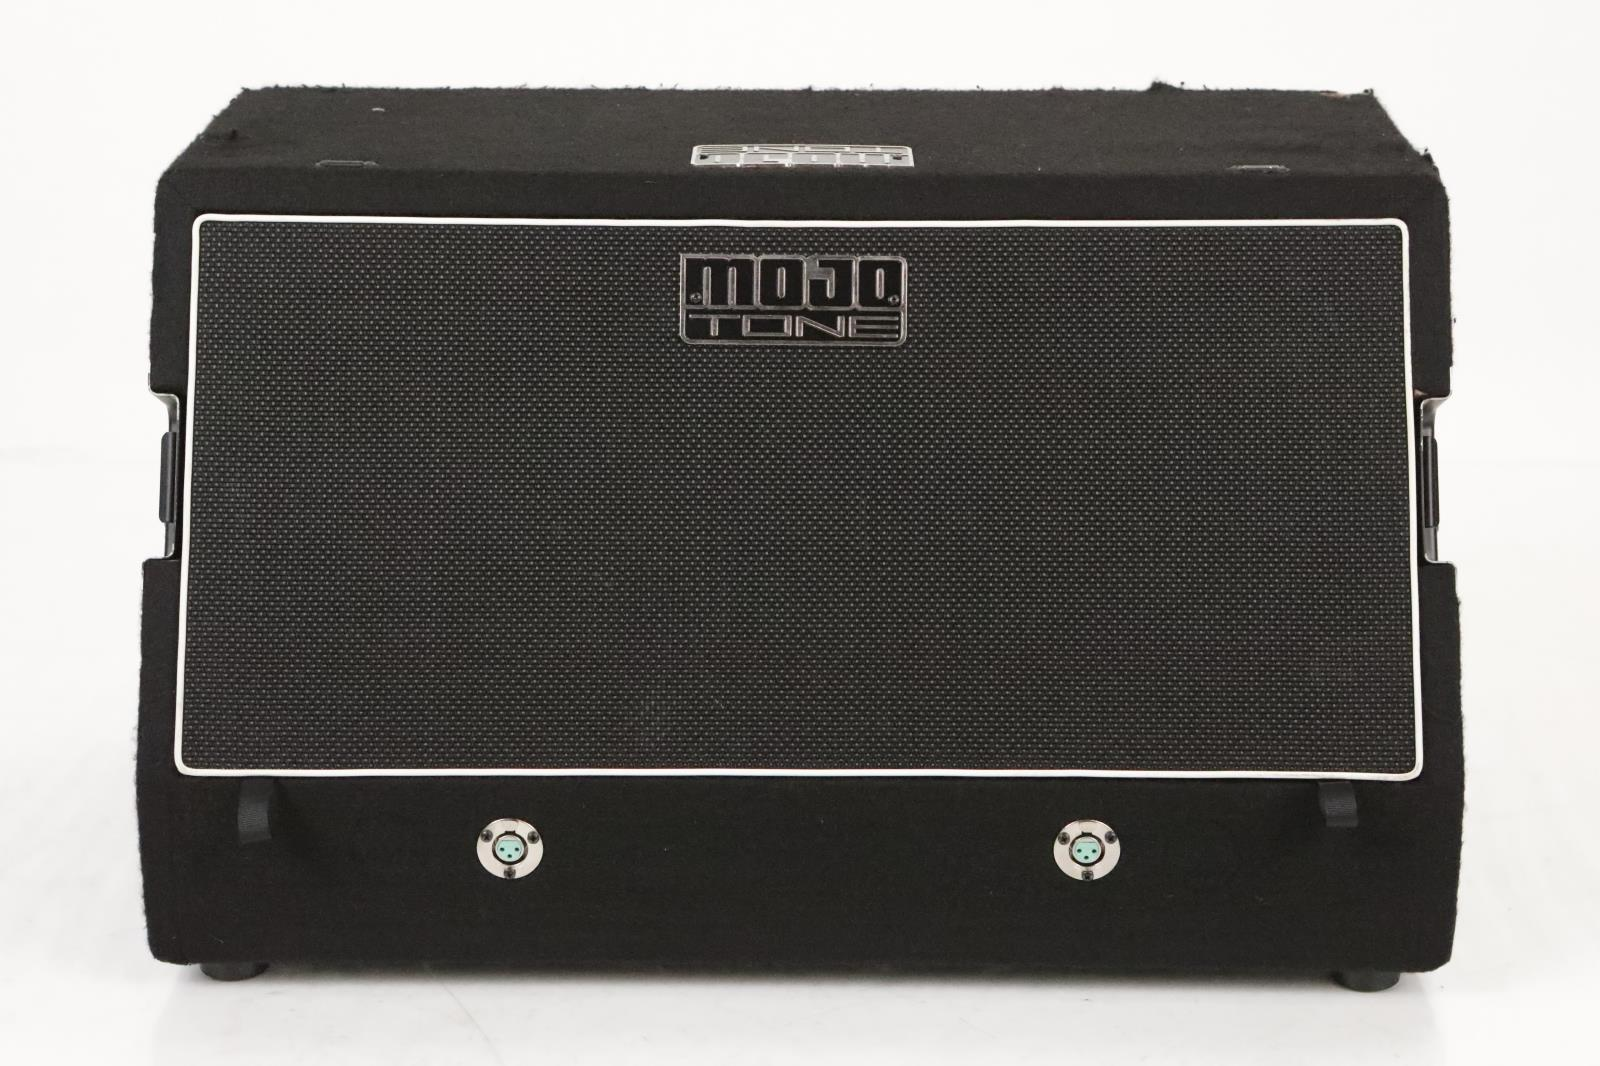 Mojo Tone Convertible 2X12 Isolation Cabinet Celestion G12 Fall Out Boy #35975